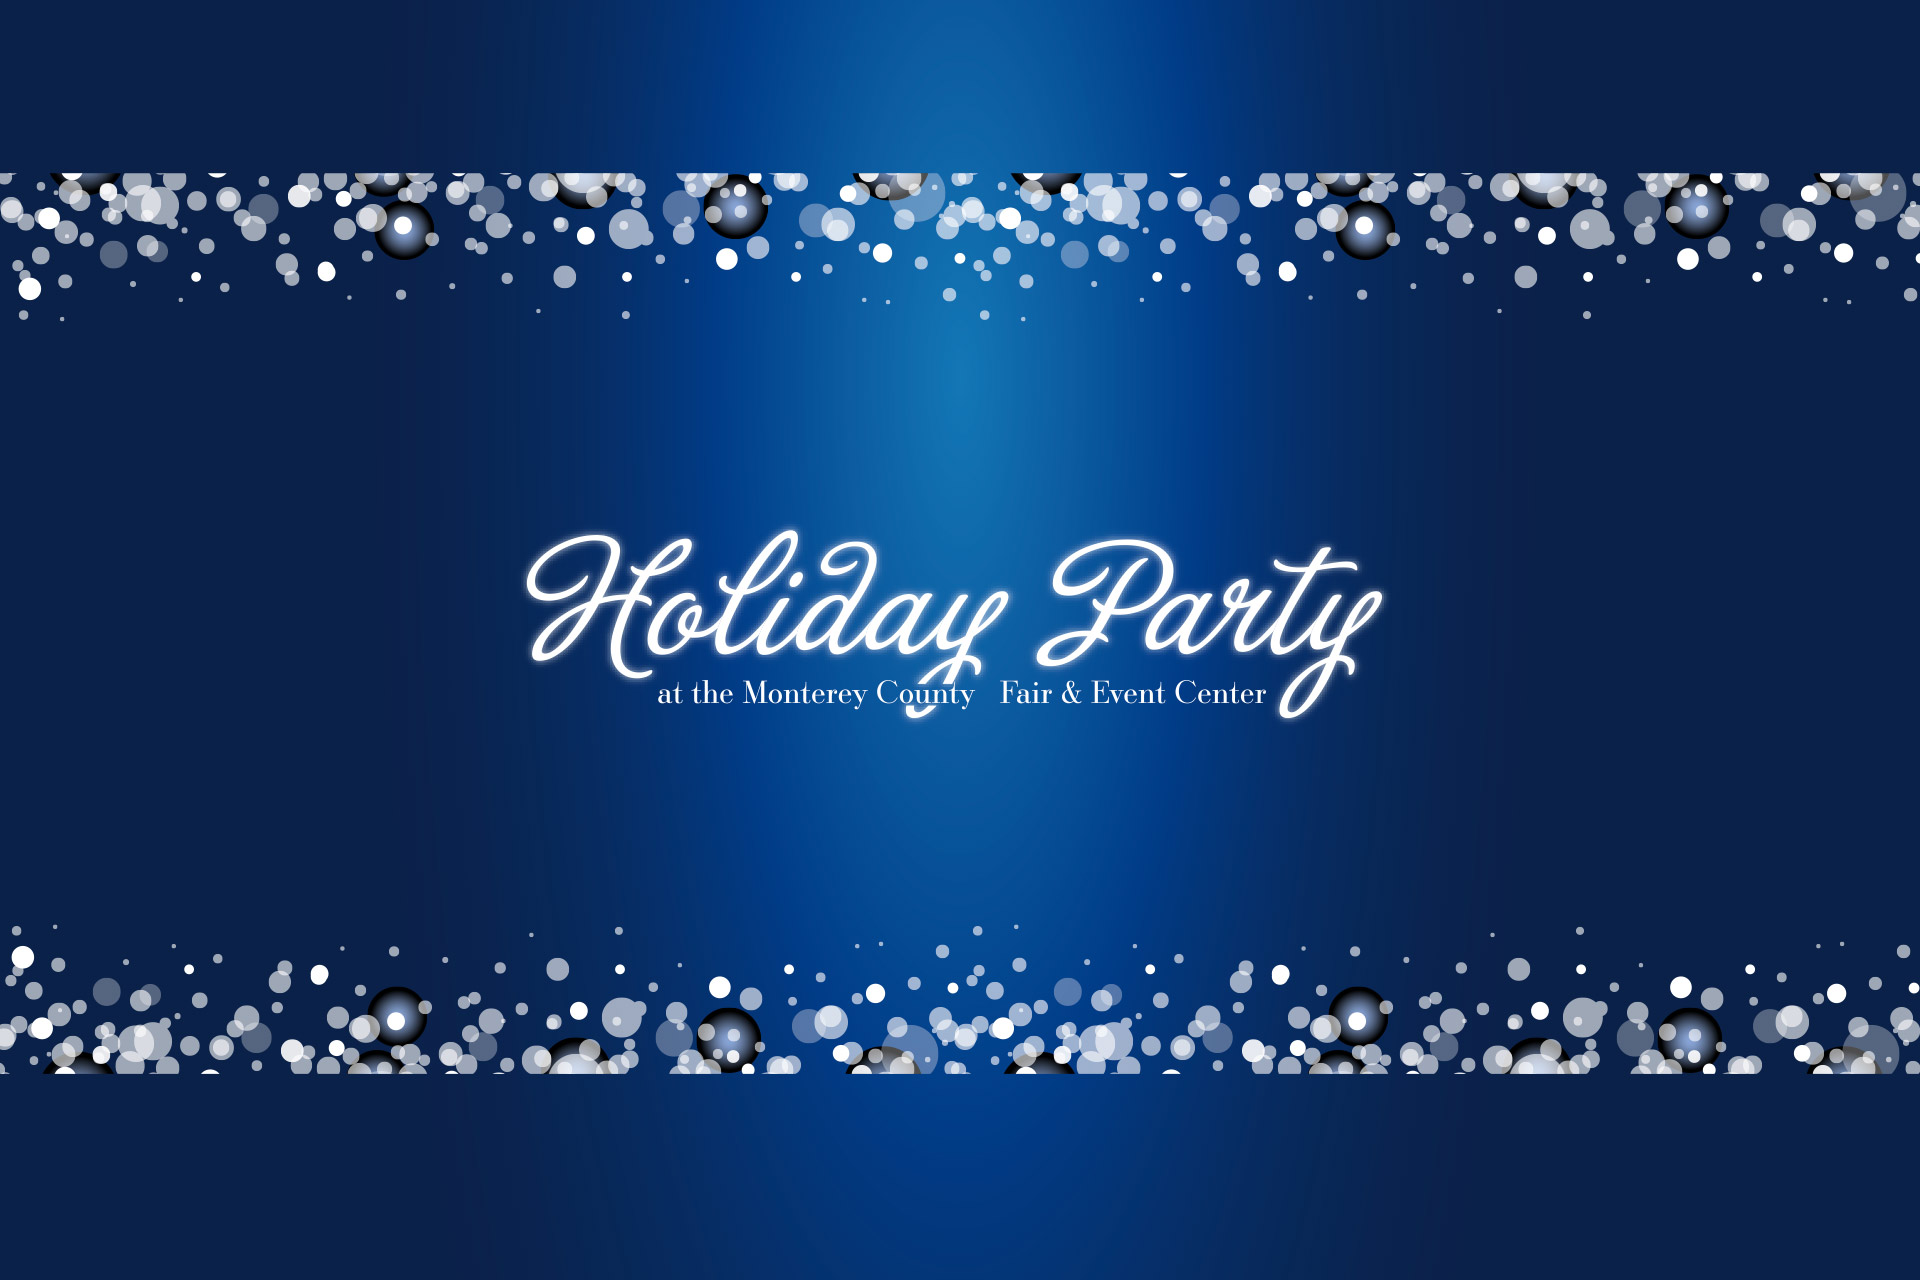 Holiday Parties at the Monterey County Fairgrounds